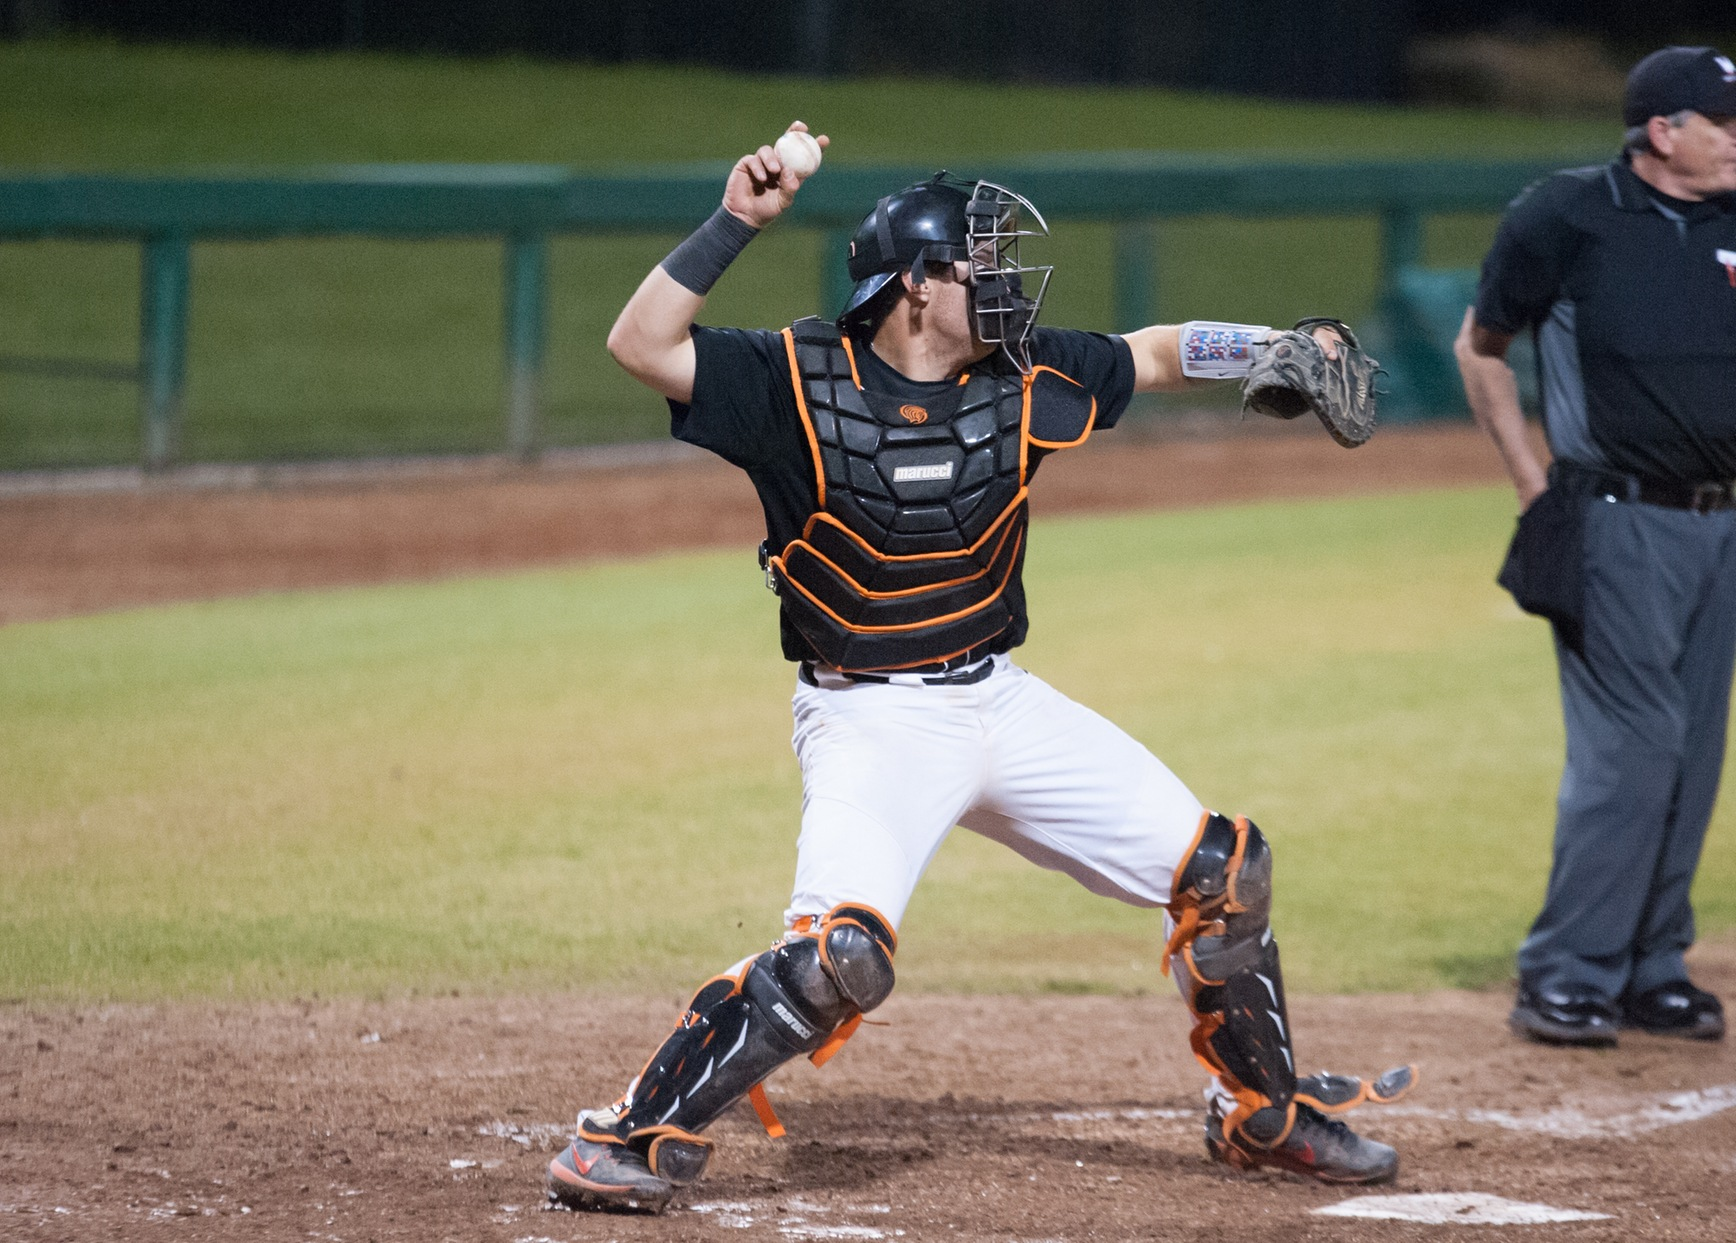 Tigers Offense Too Strong for ASU